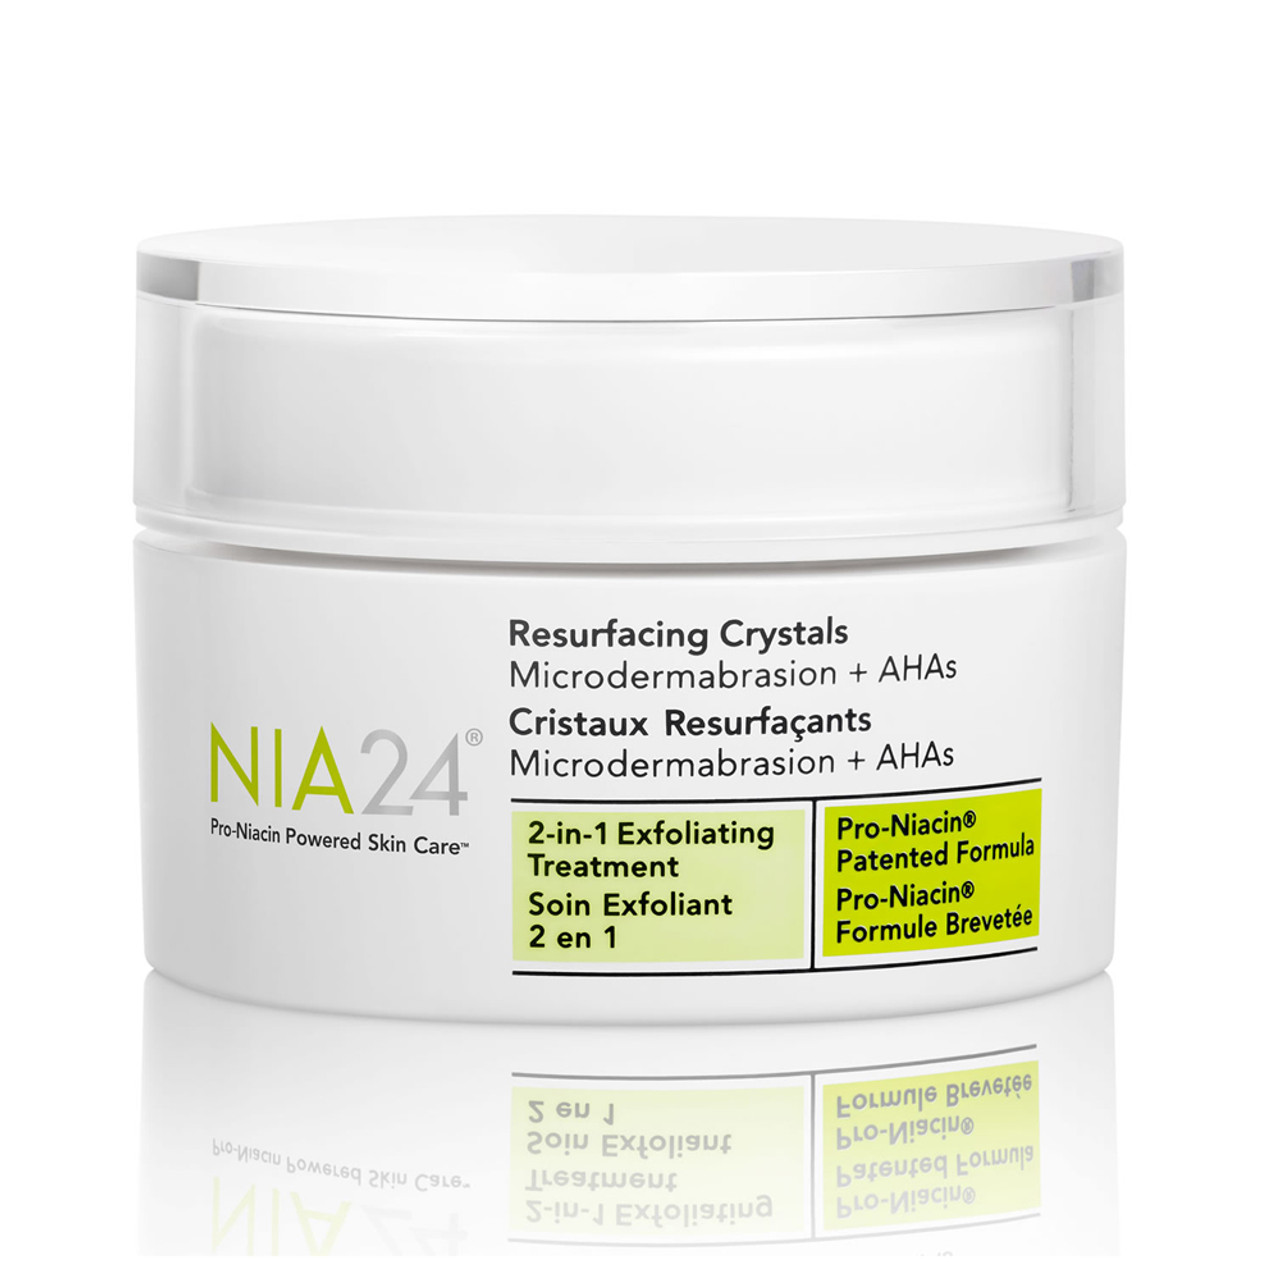 NIA24 Skin Resurfacing Crystals